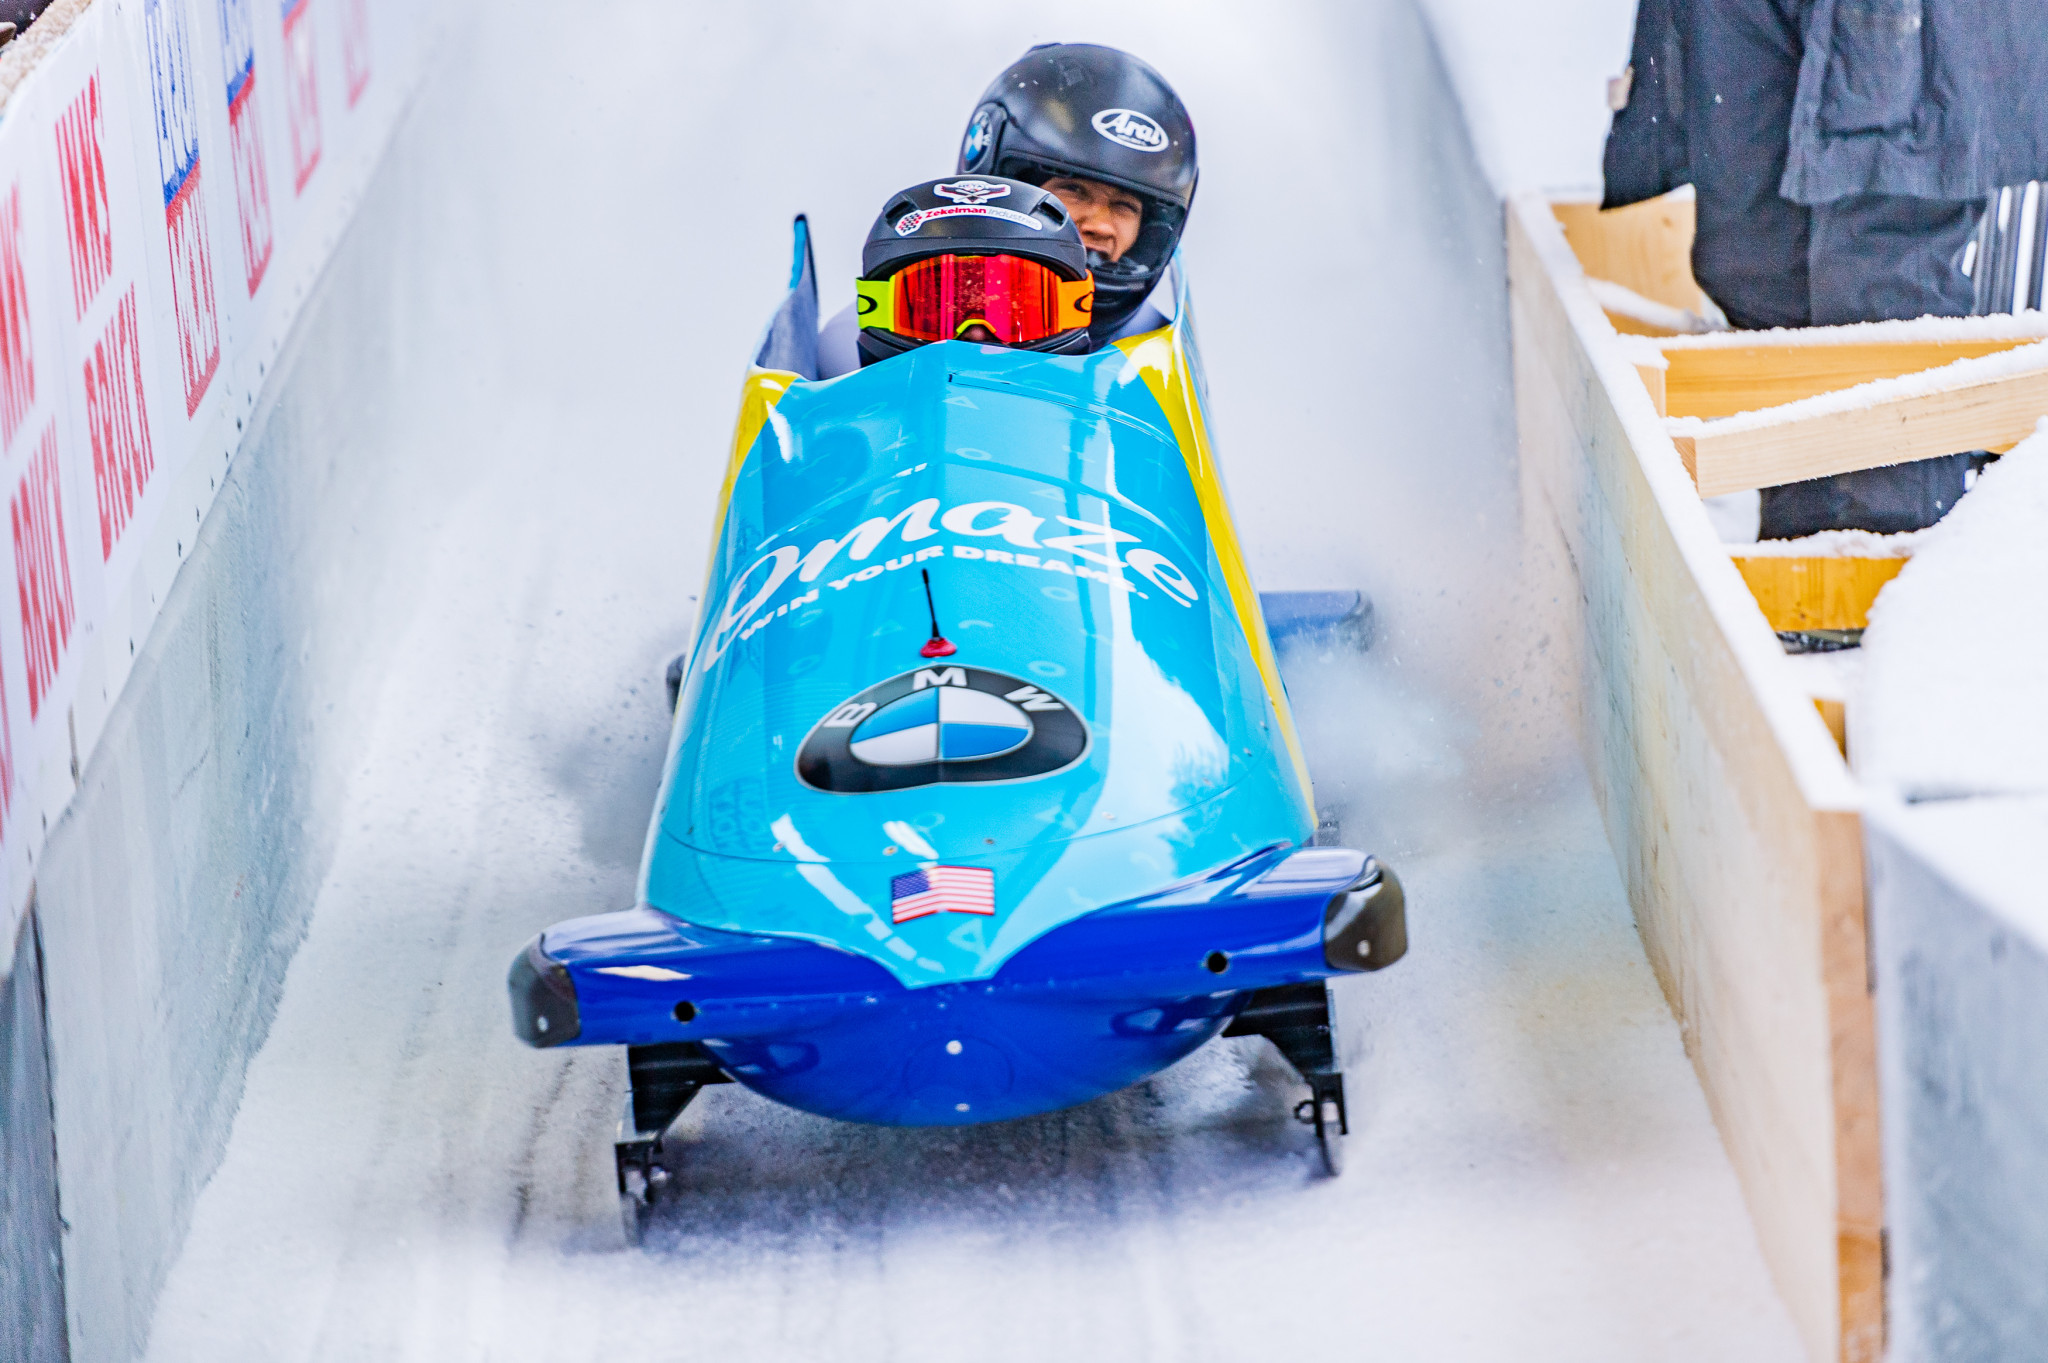 Humphries takes charge on first day of IBSF World Championships